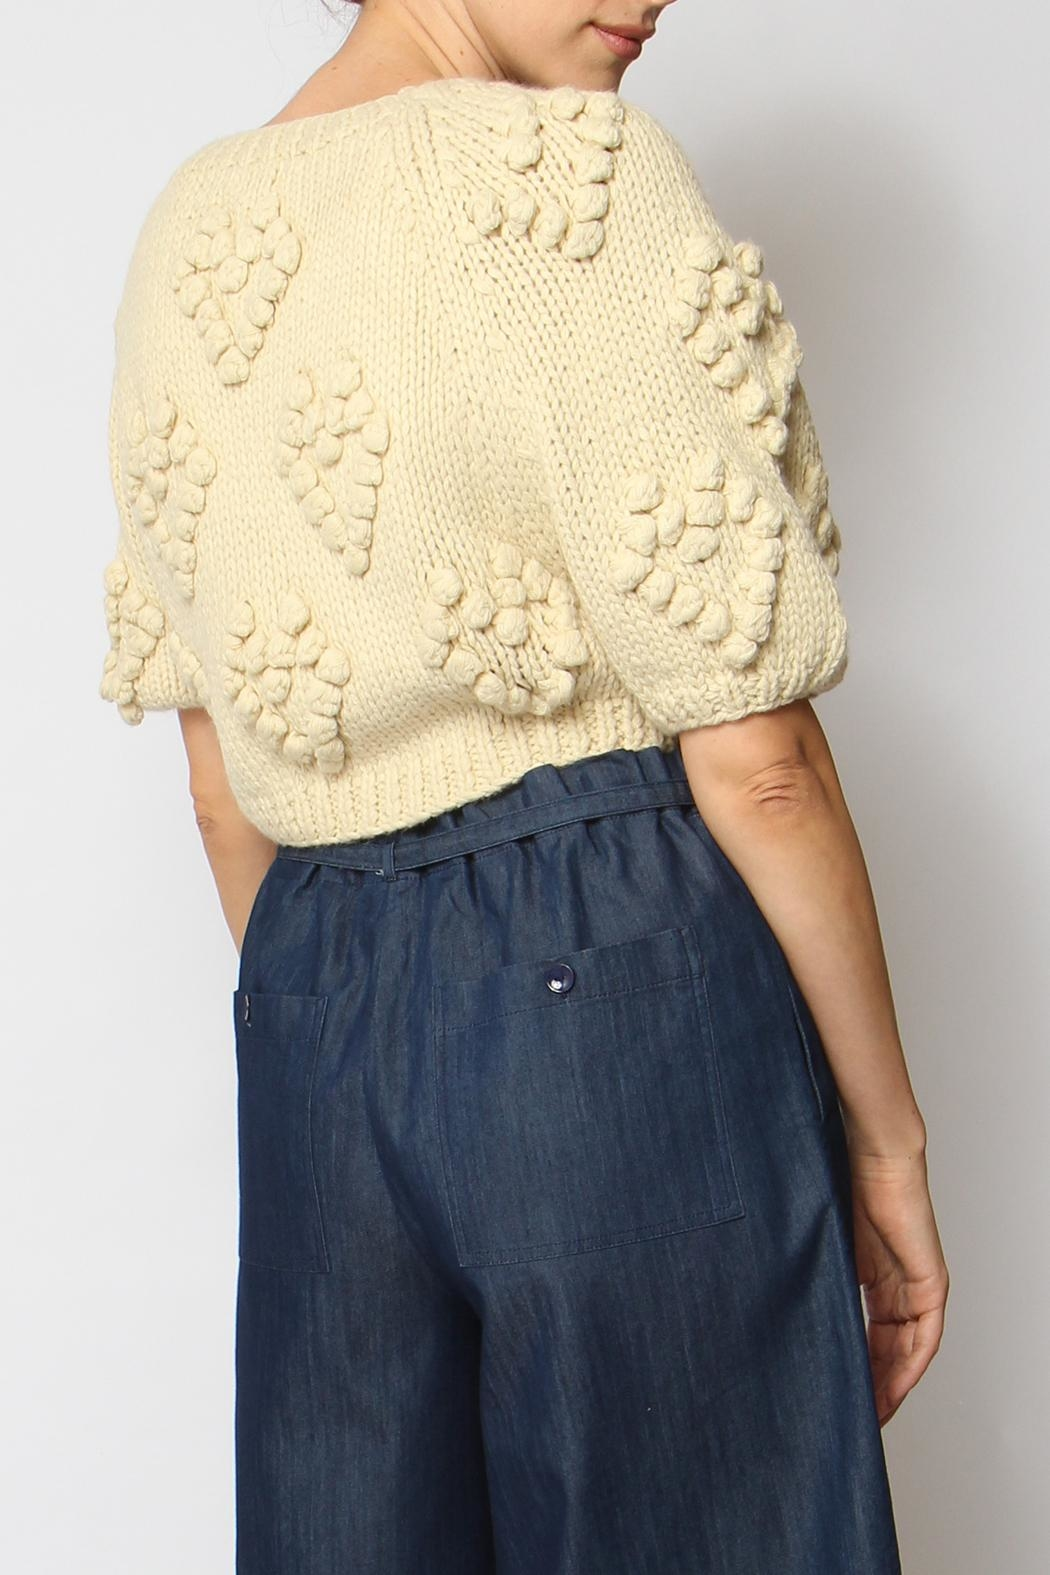 Callahan Couer Cropped Sweater - Front Full Image